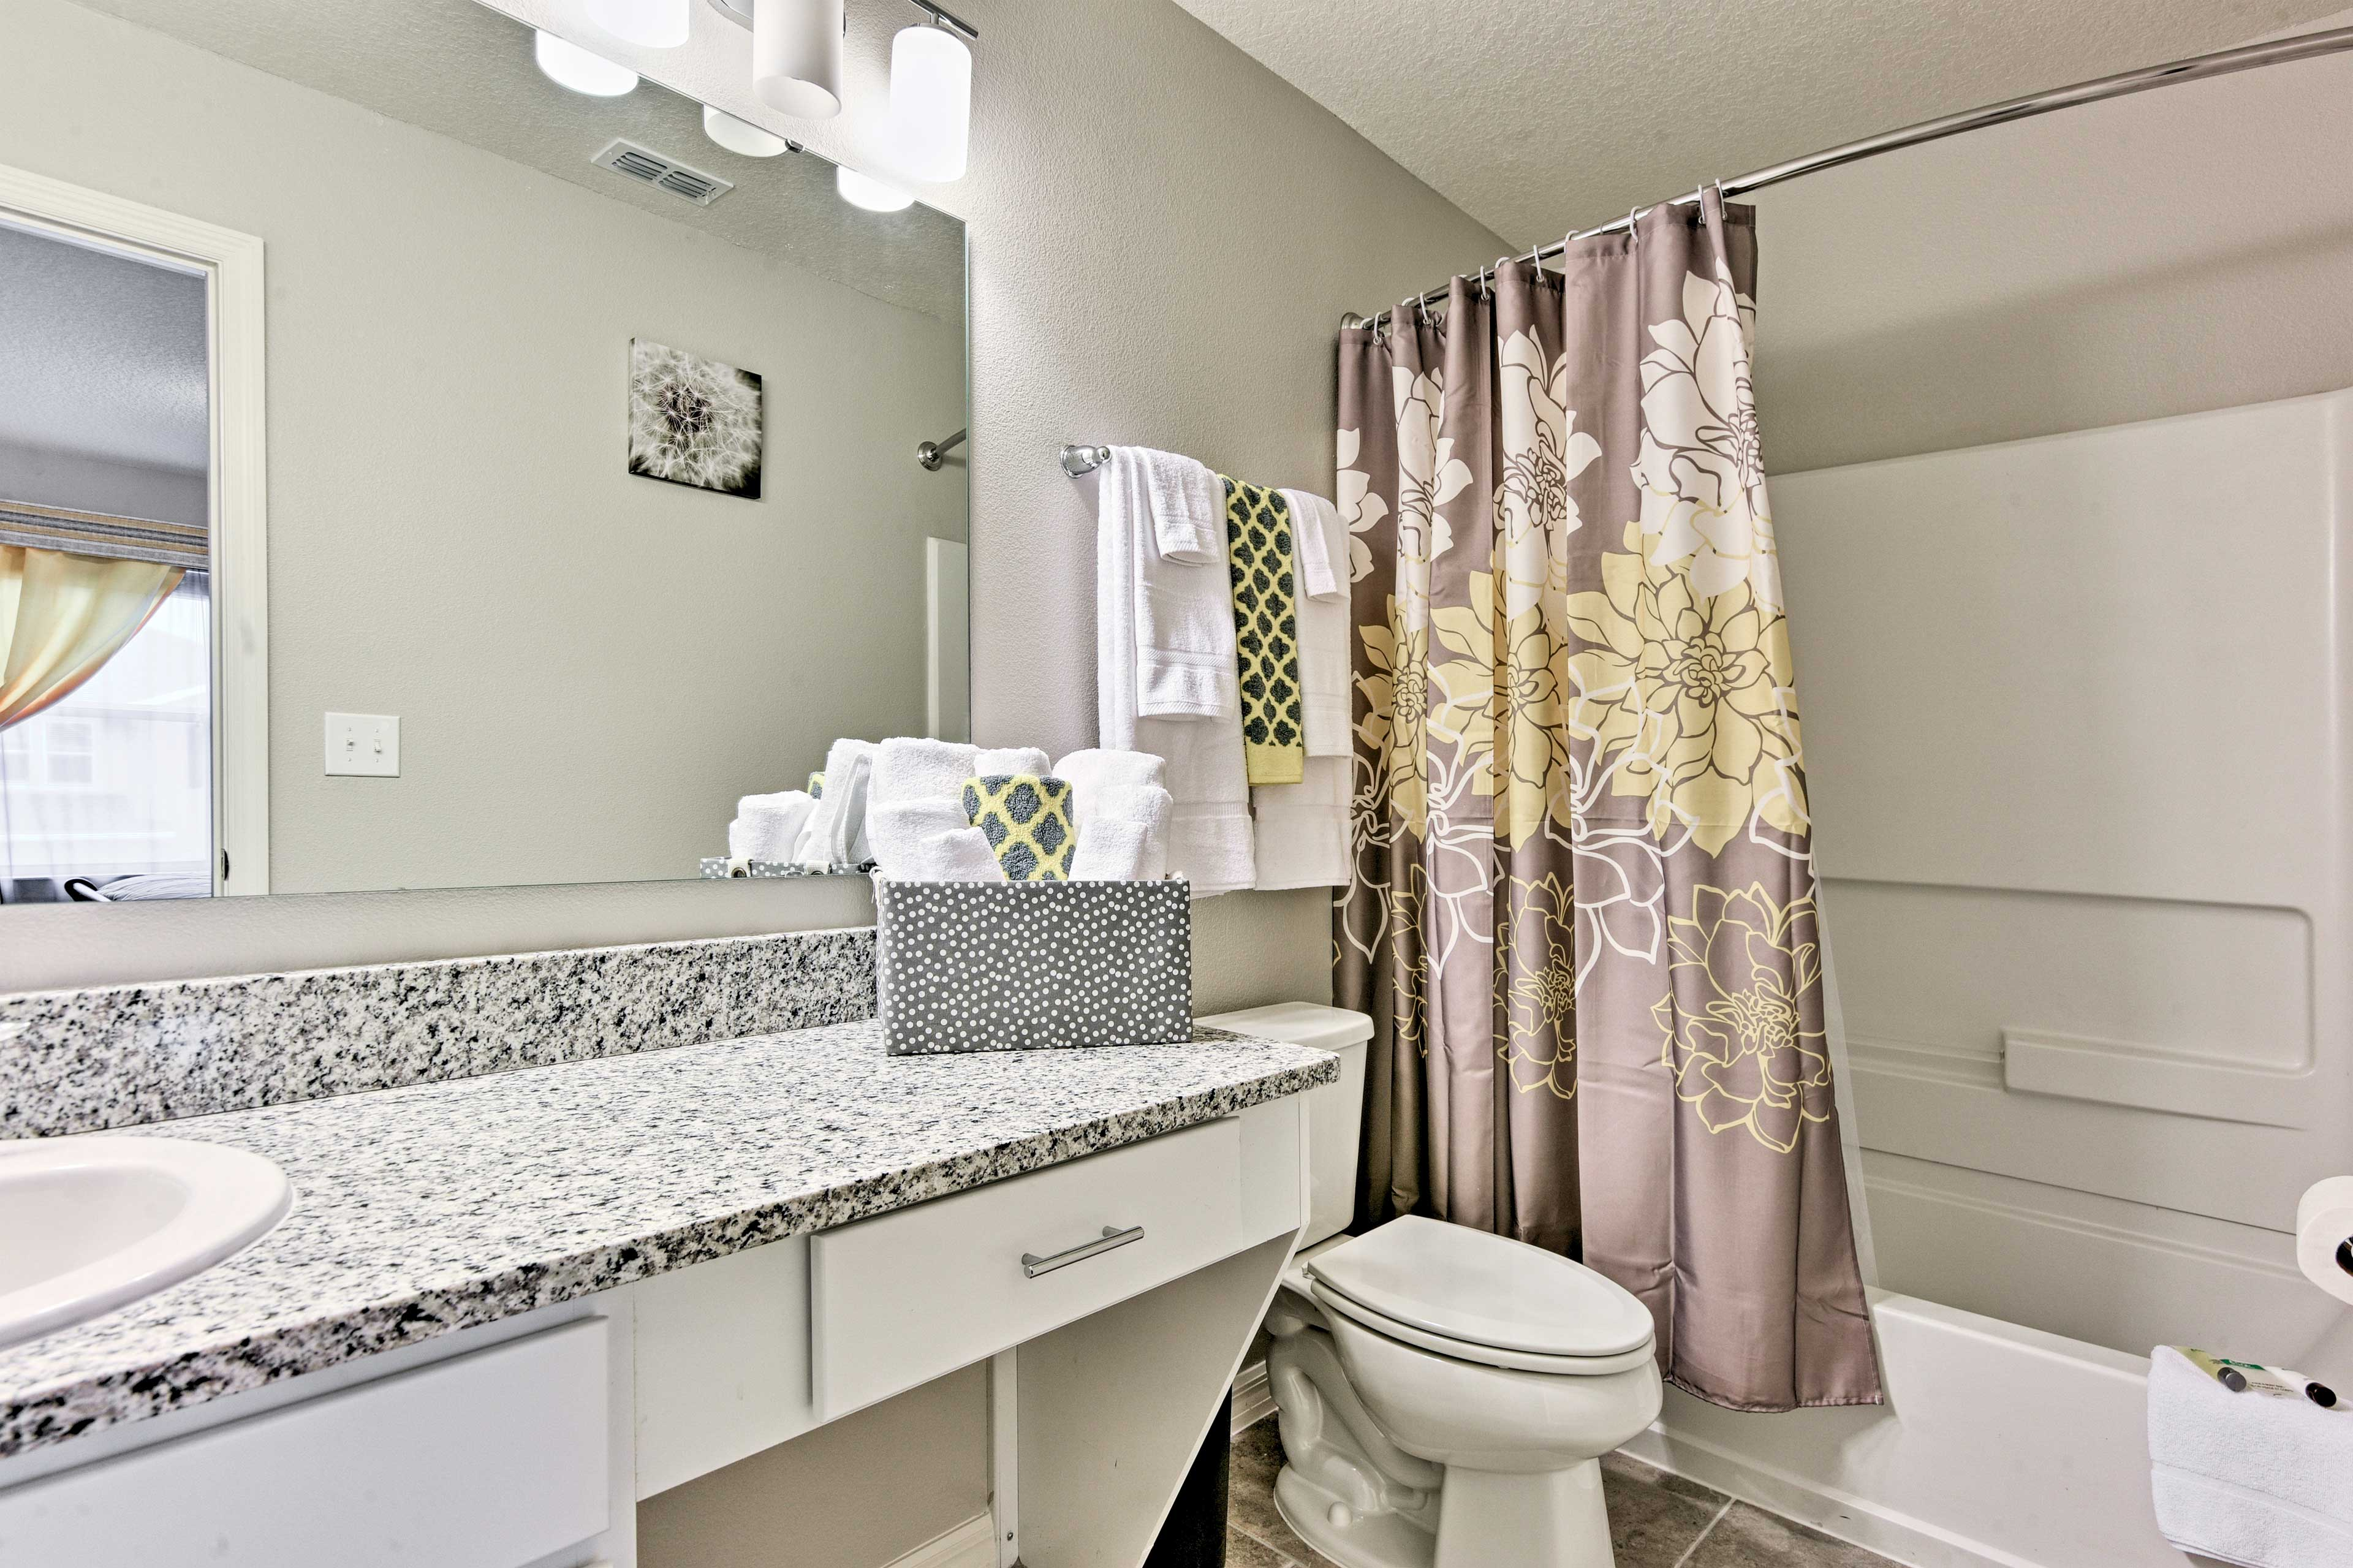 This home is equipped with 3 full bathrooms and one half-bath.